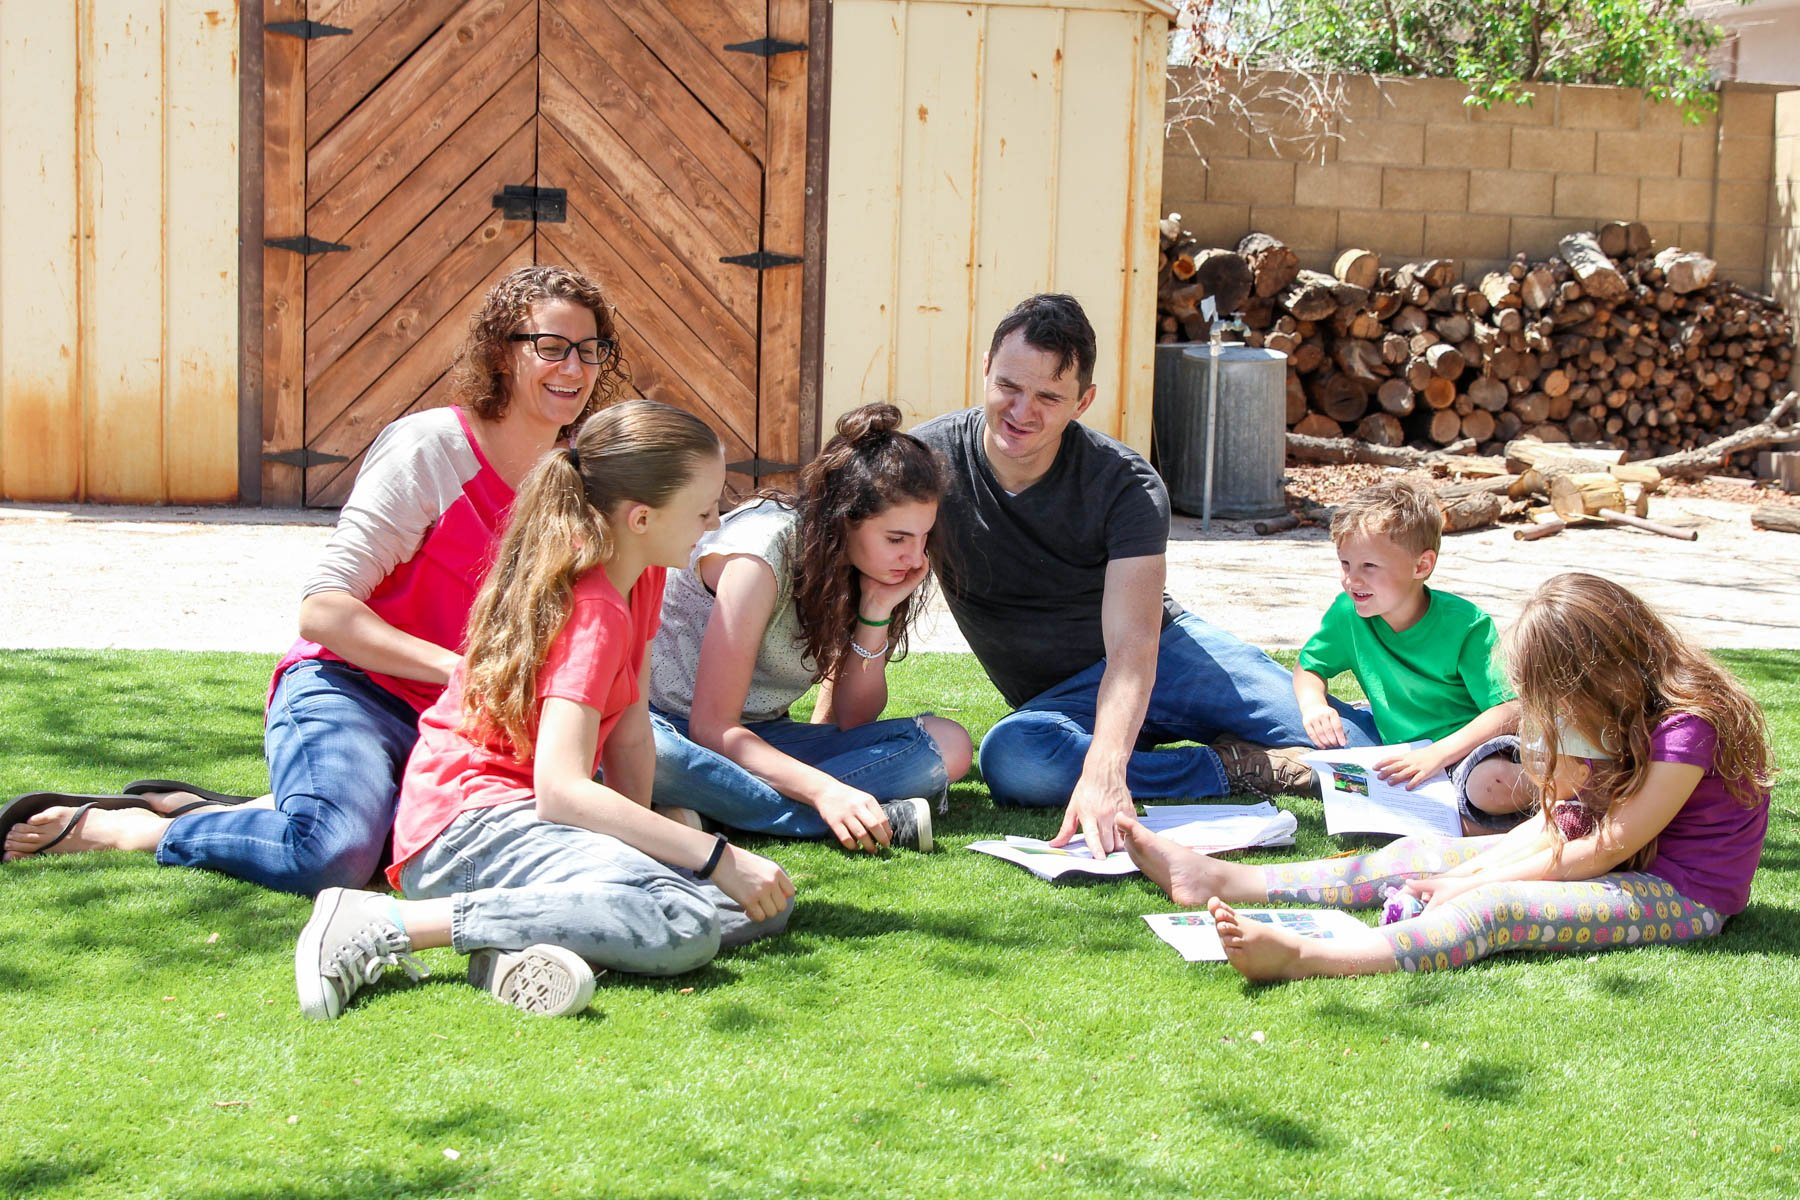 Home Depot Backyard Games - get this free project plan to make as a family via @PagingSupermom